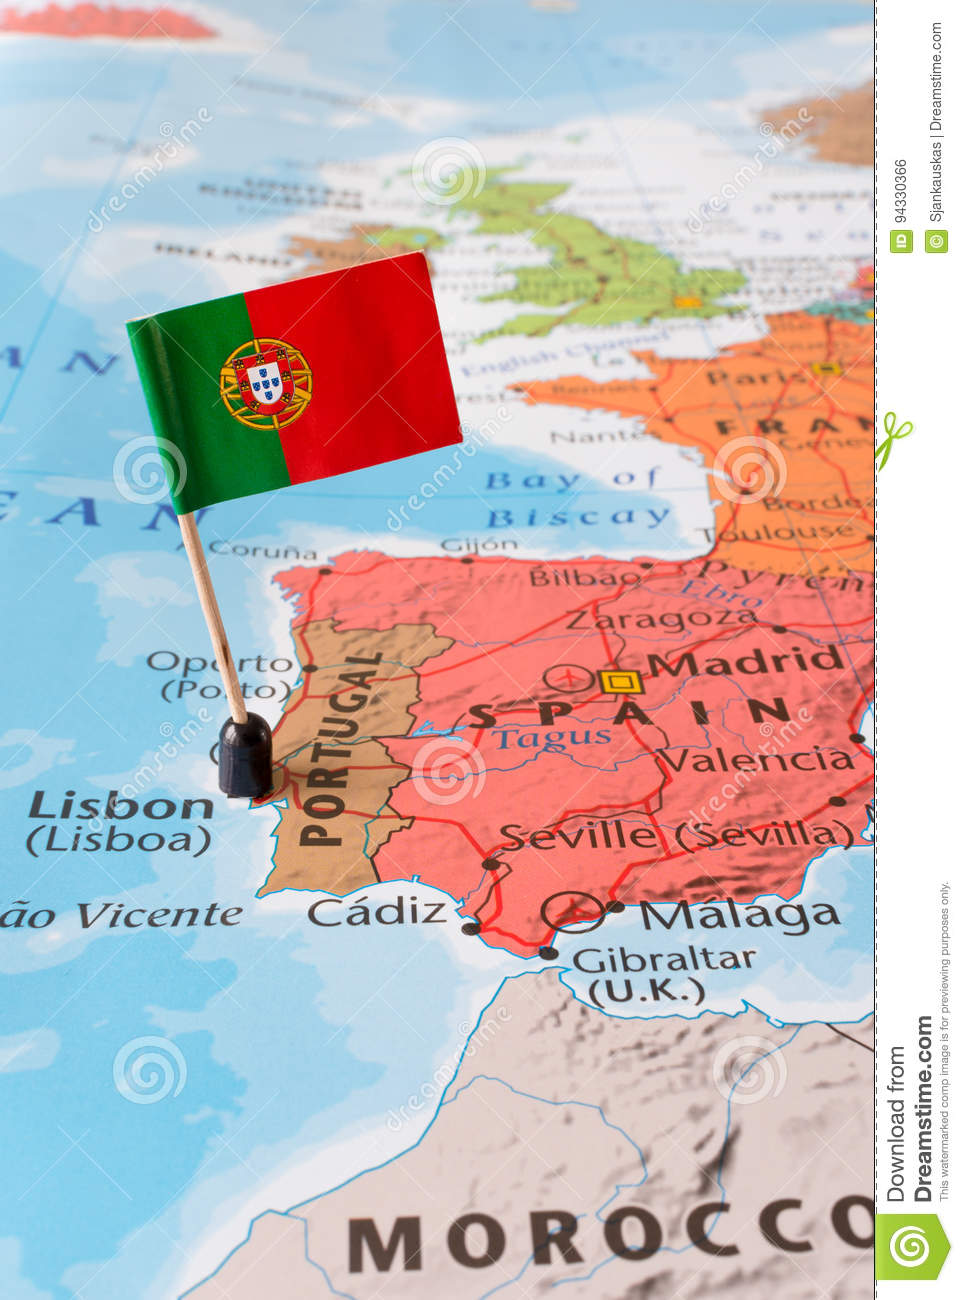 Portugal Map And Flag, Travel Concept Stock Photo - Image of paper ...